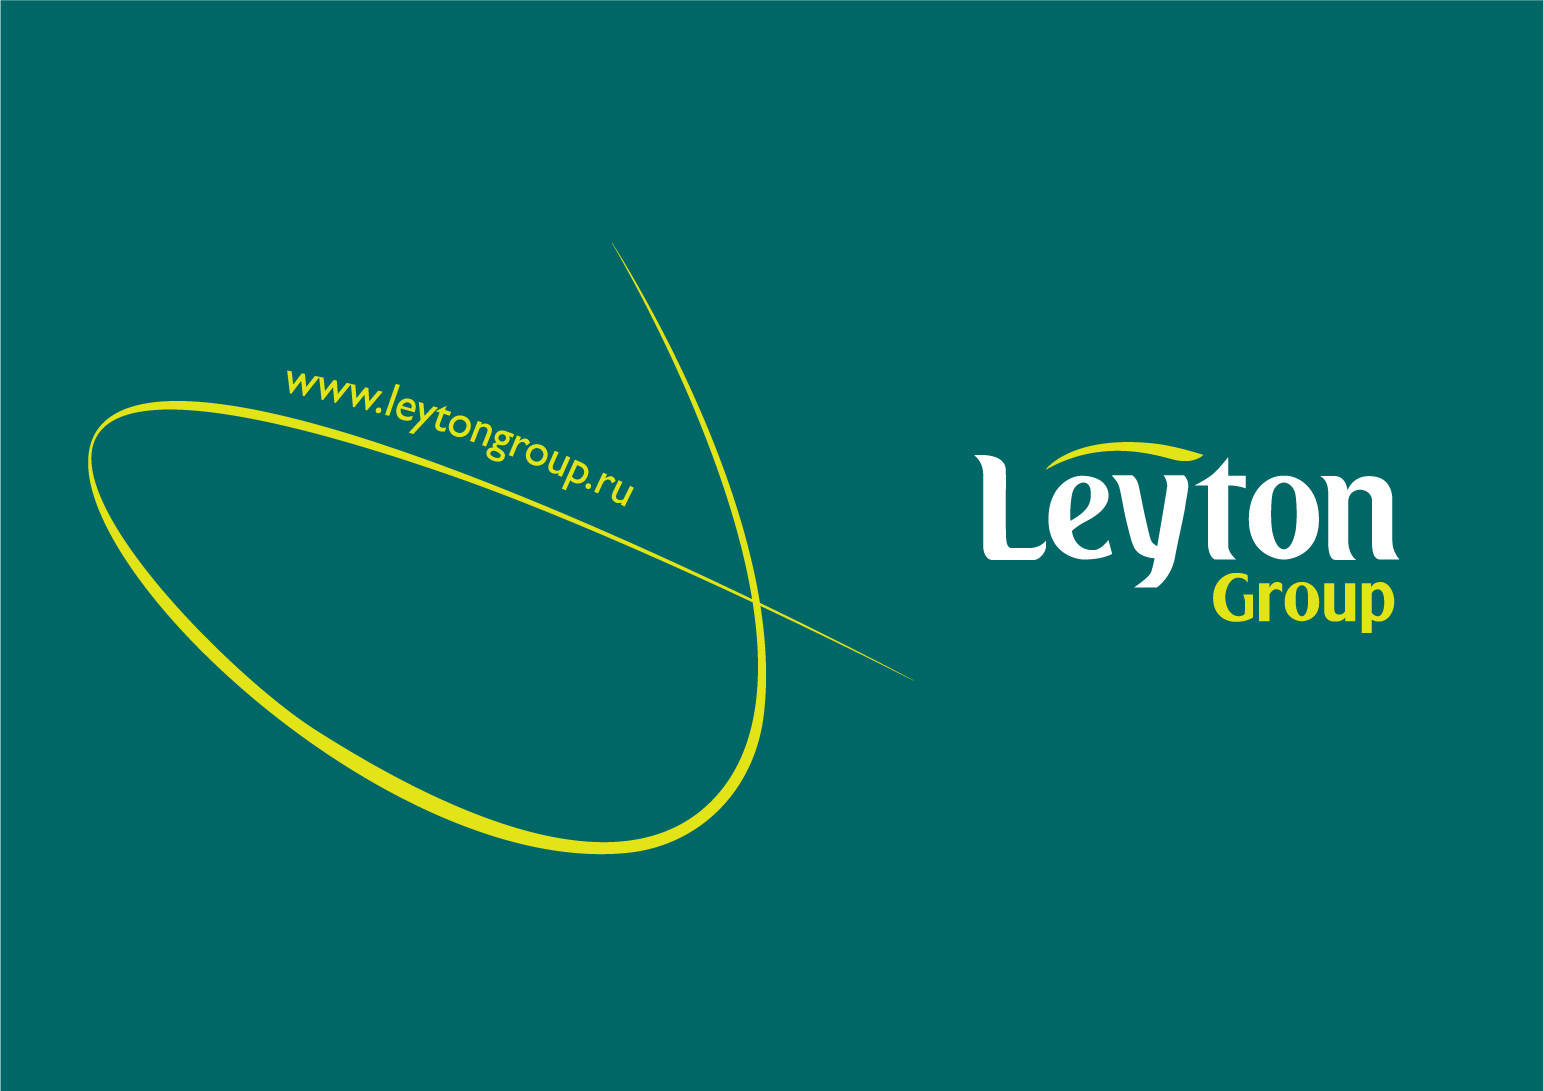 Leyton Group